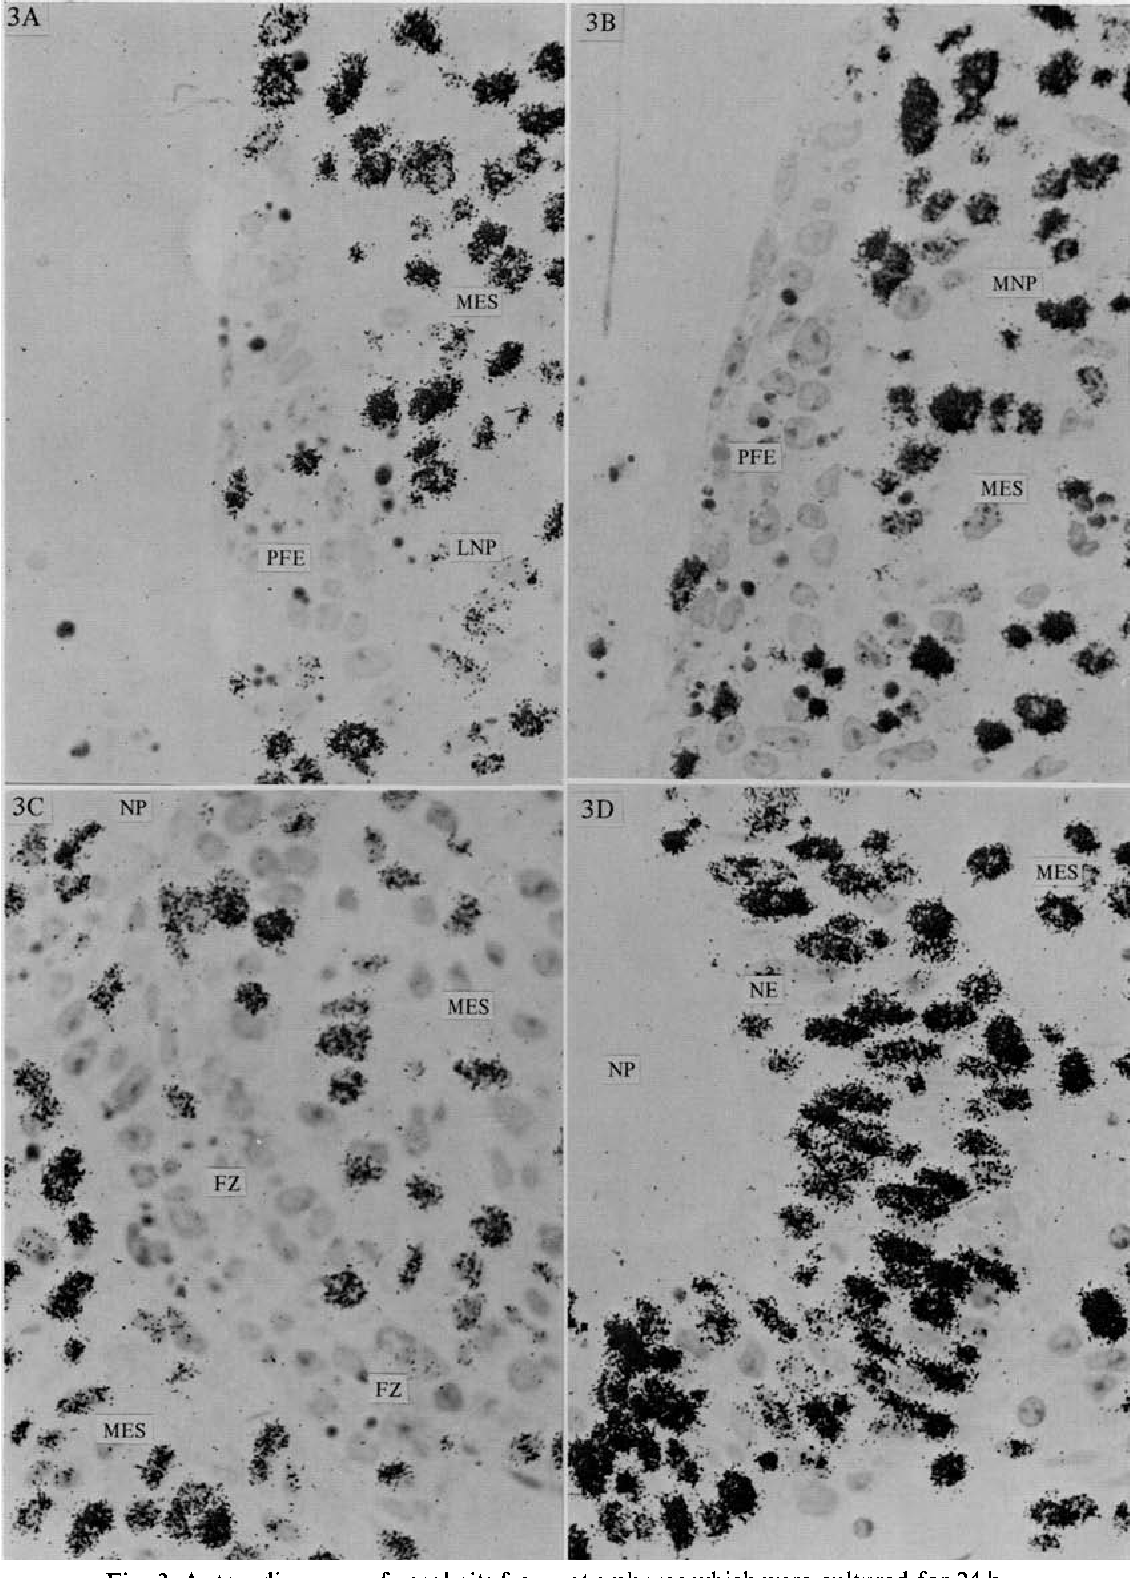 Fig. 3. Autoradiograms of nasal pits from rat embryos which were cultured for 24 h, and exposed the last hour of culture to 10/tCi/ml of [3H]thymidine. In (A) and (B) significantly less labeling is observed in the presumptive fusion epithelium of the lateral and medial-nasal processes, when compared to adjacent nasal epithelium (D) and underlying mesenchyme. Few cells in the fusion zone (C) are labeled when compared to underlying mesenchyme. LNP, lateral-nasal process; MNP, medial-nasal process; PFE, presumptive fusion epithelium; NE, nasal epithelium; MES, mesenchyme; NP, nasal pit; FZ, fusion zone, x 860.